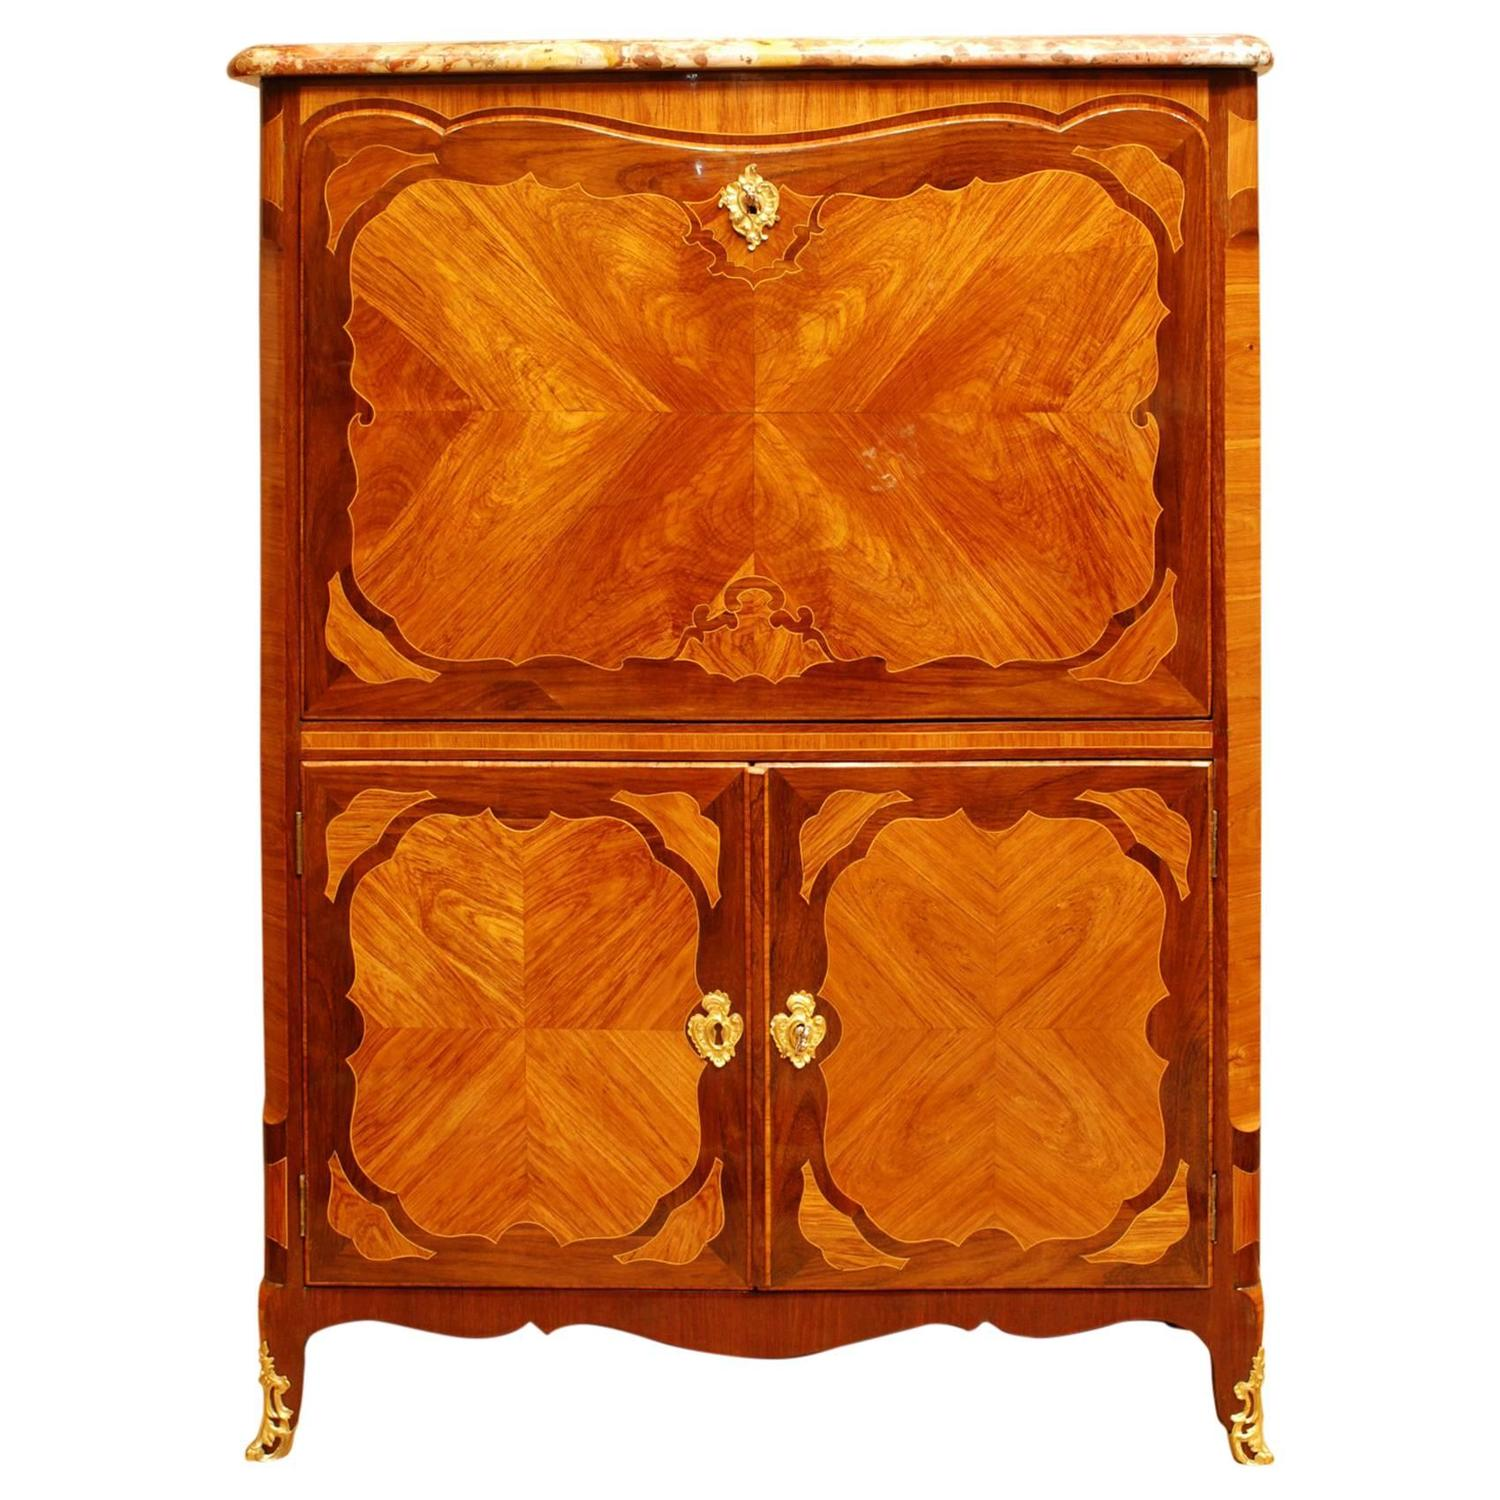 louis xv secretaire abattant stamped genty at 1stdibs. Black Bedroom Furniture Sets. Home Design Ideas